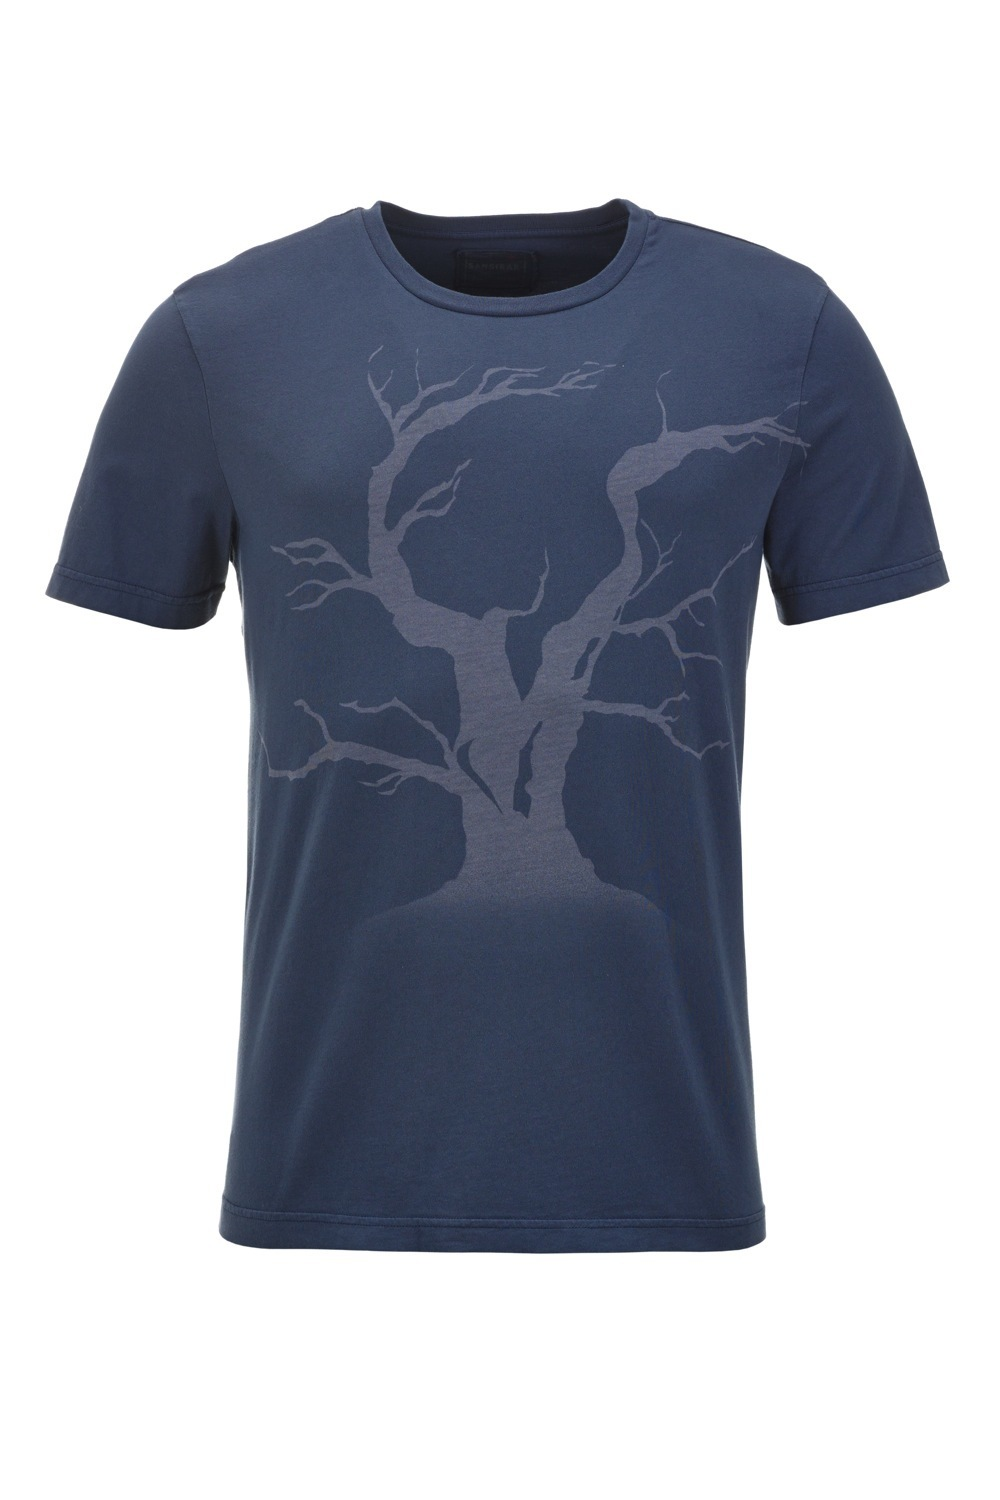 Herren T-Shirt TREE, Blue/ blue, Gr. XL